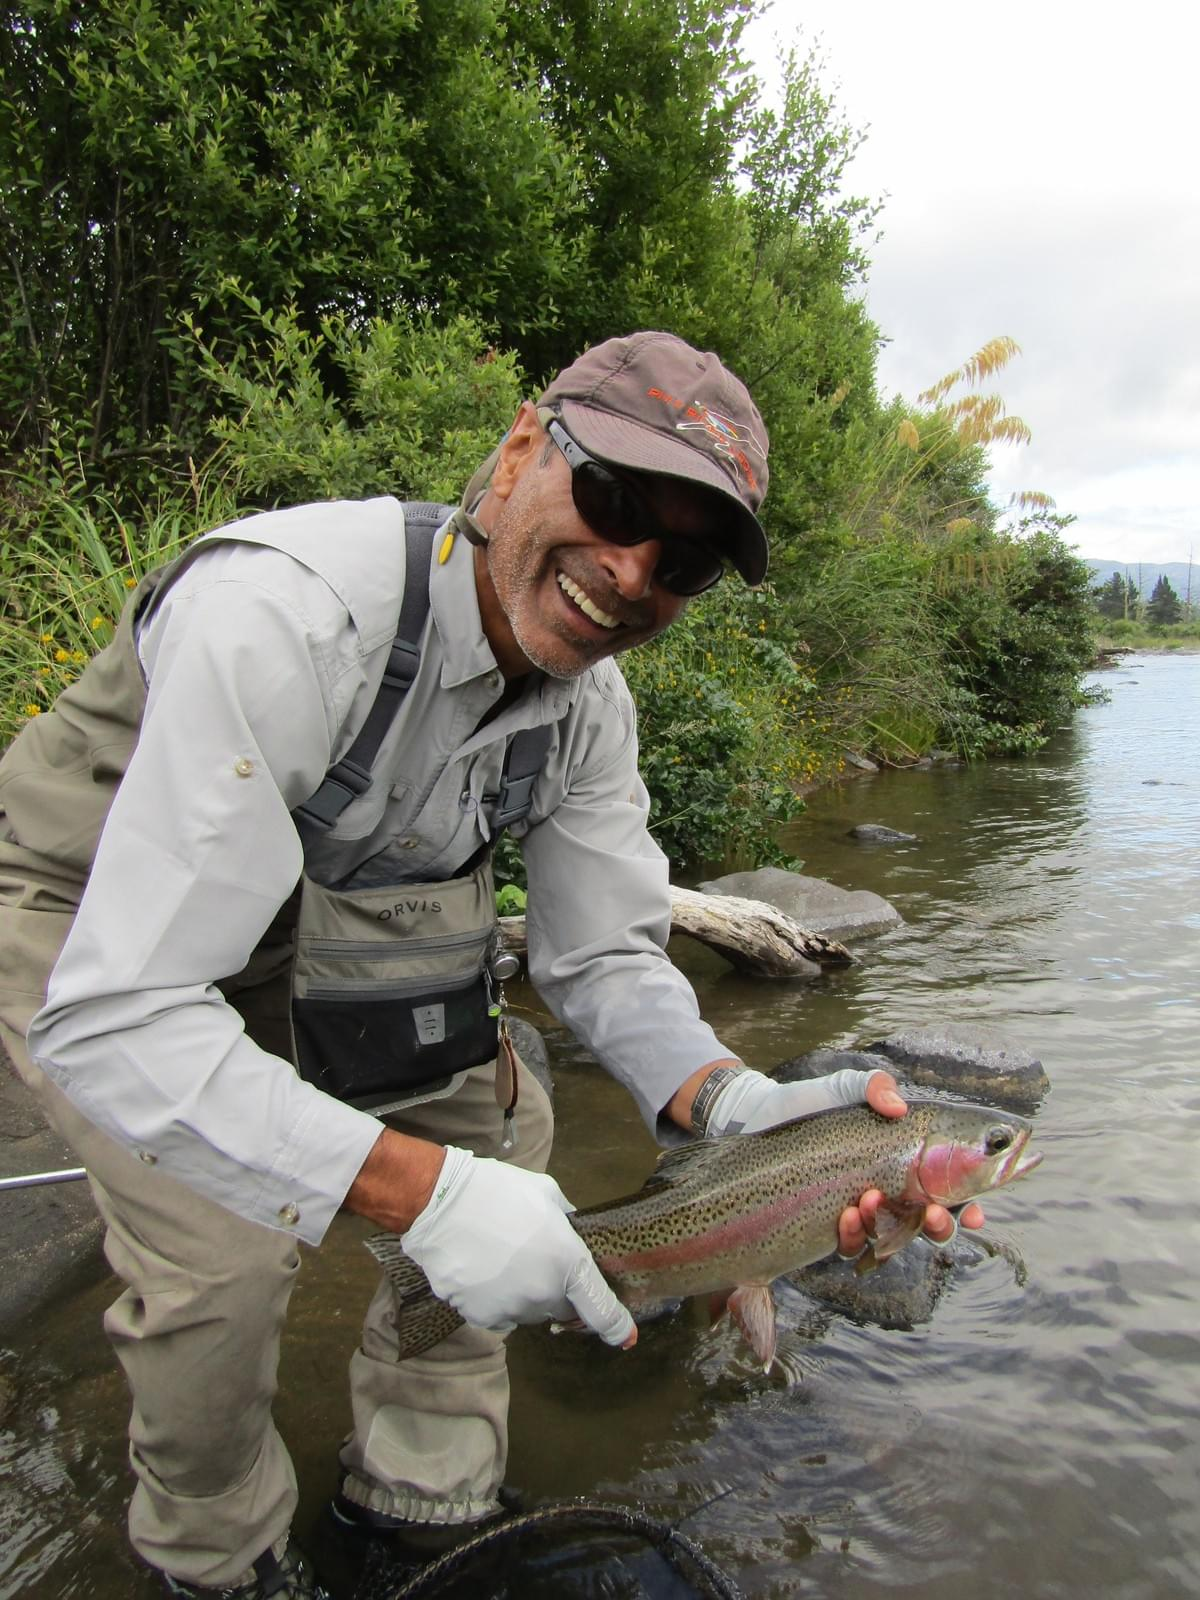 Angler Kerry Suntura January 2019       Photo taken by Taupo fly fishing guide Adam Priest